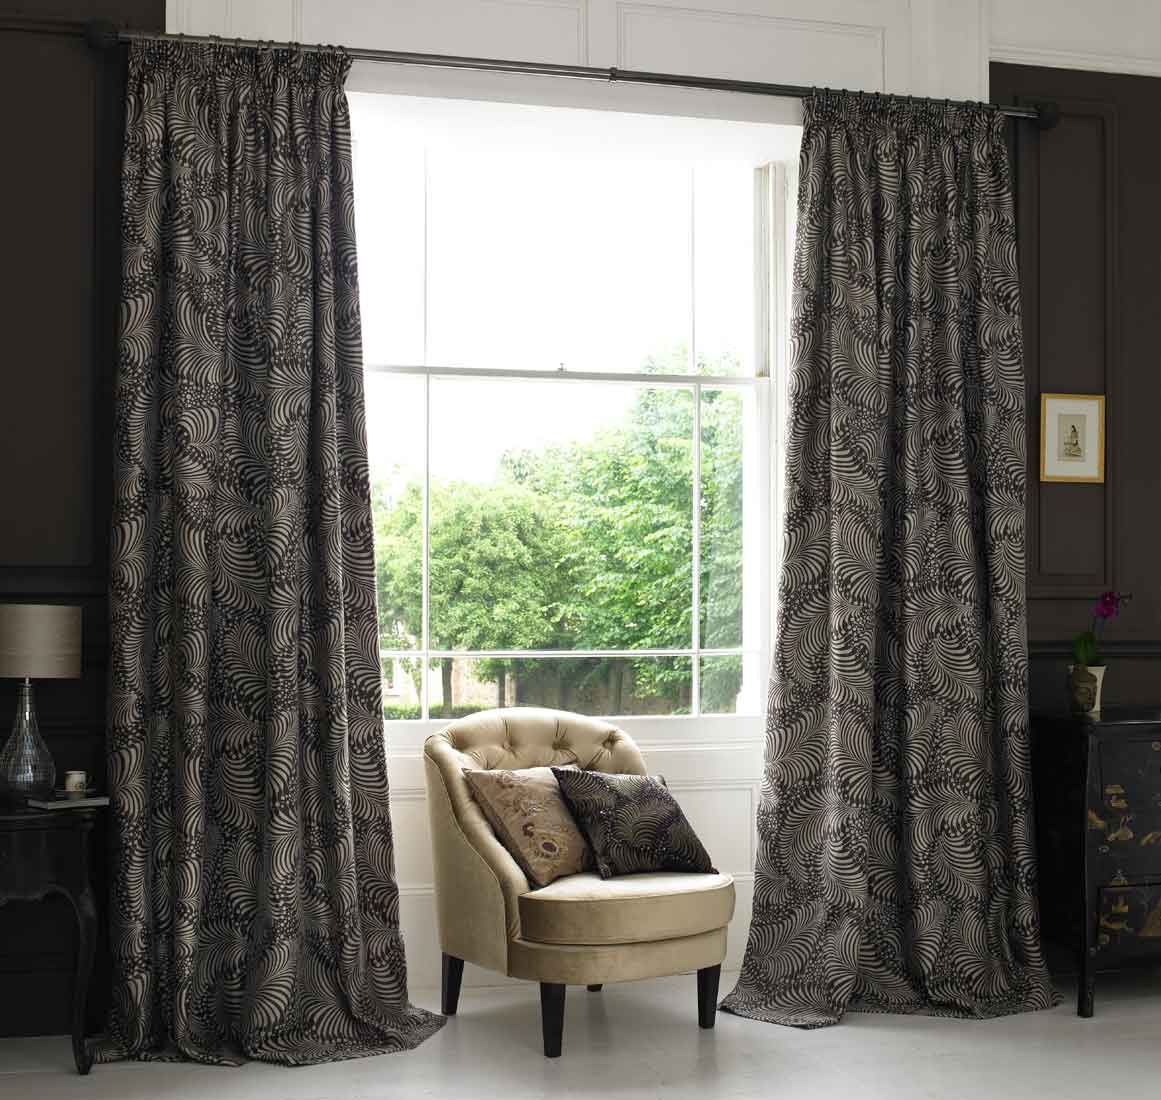 Also you will need to decide what length your new curtains will be -floor  length or sill length. Floor length curtains should just skim the floor  while sill ...